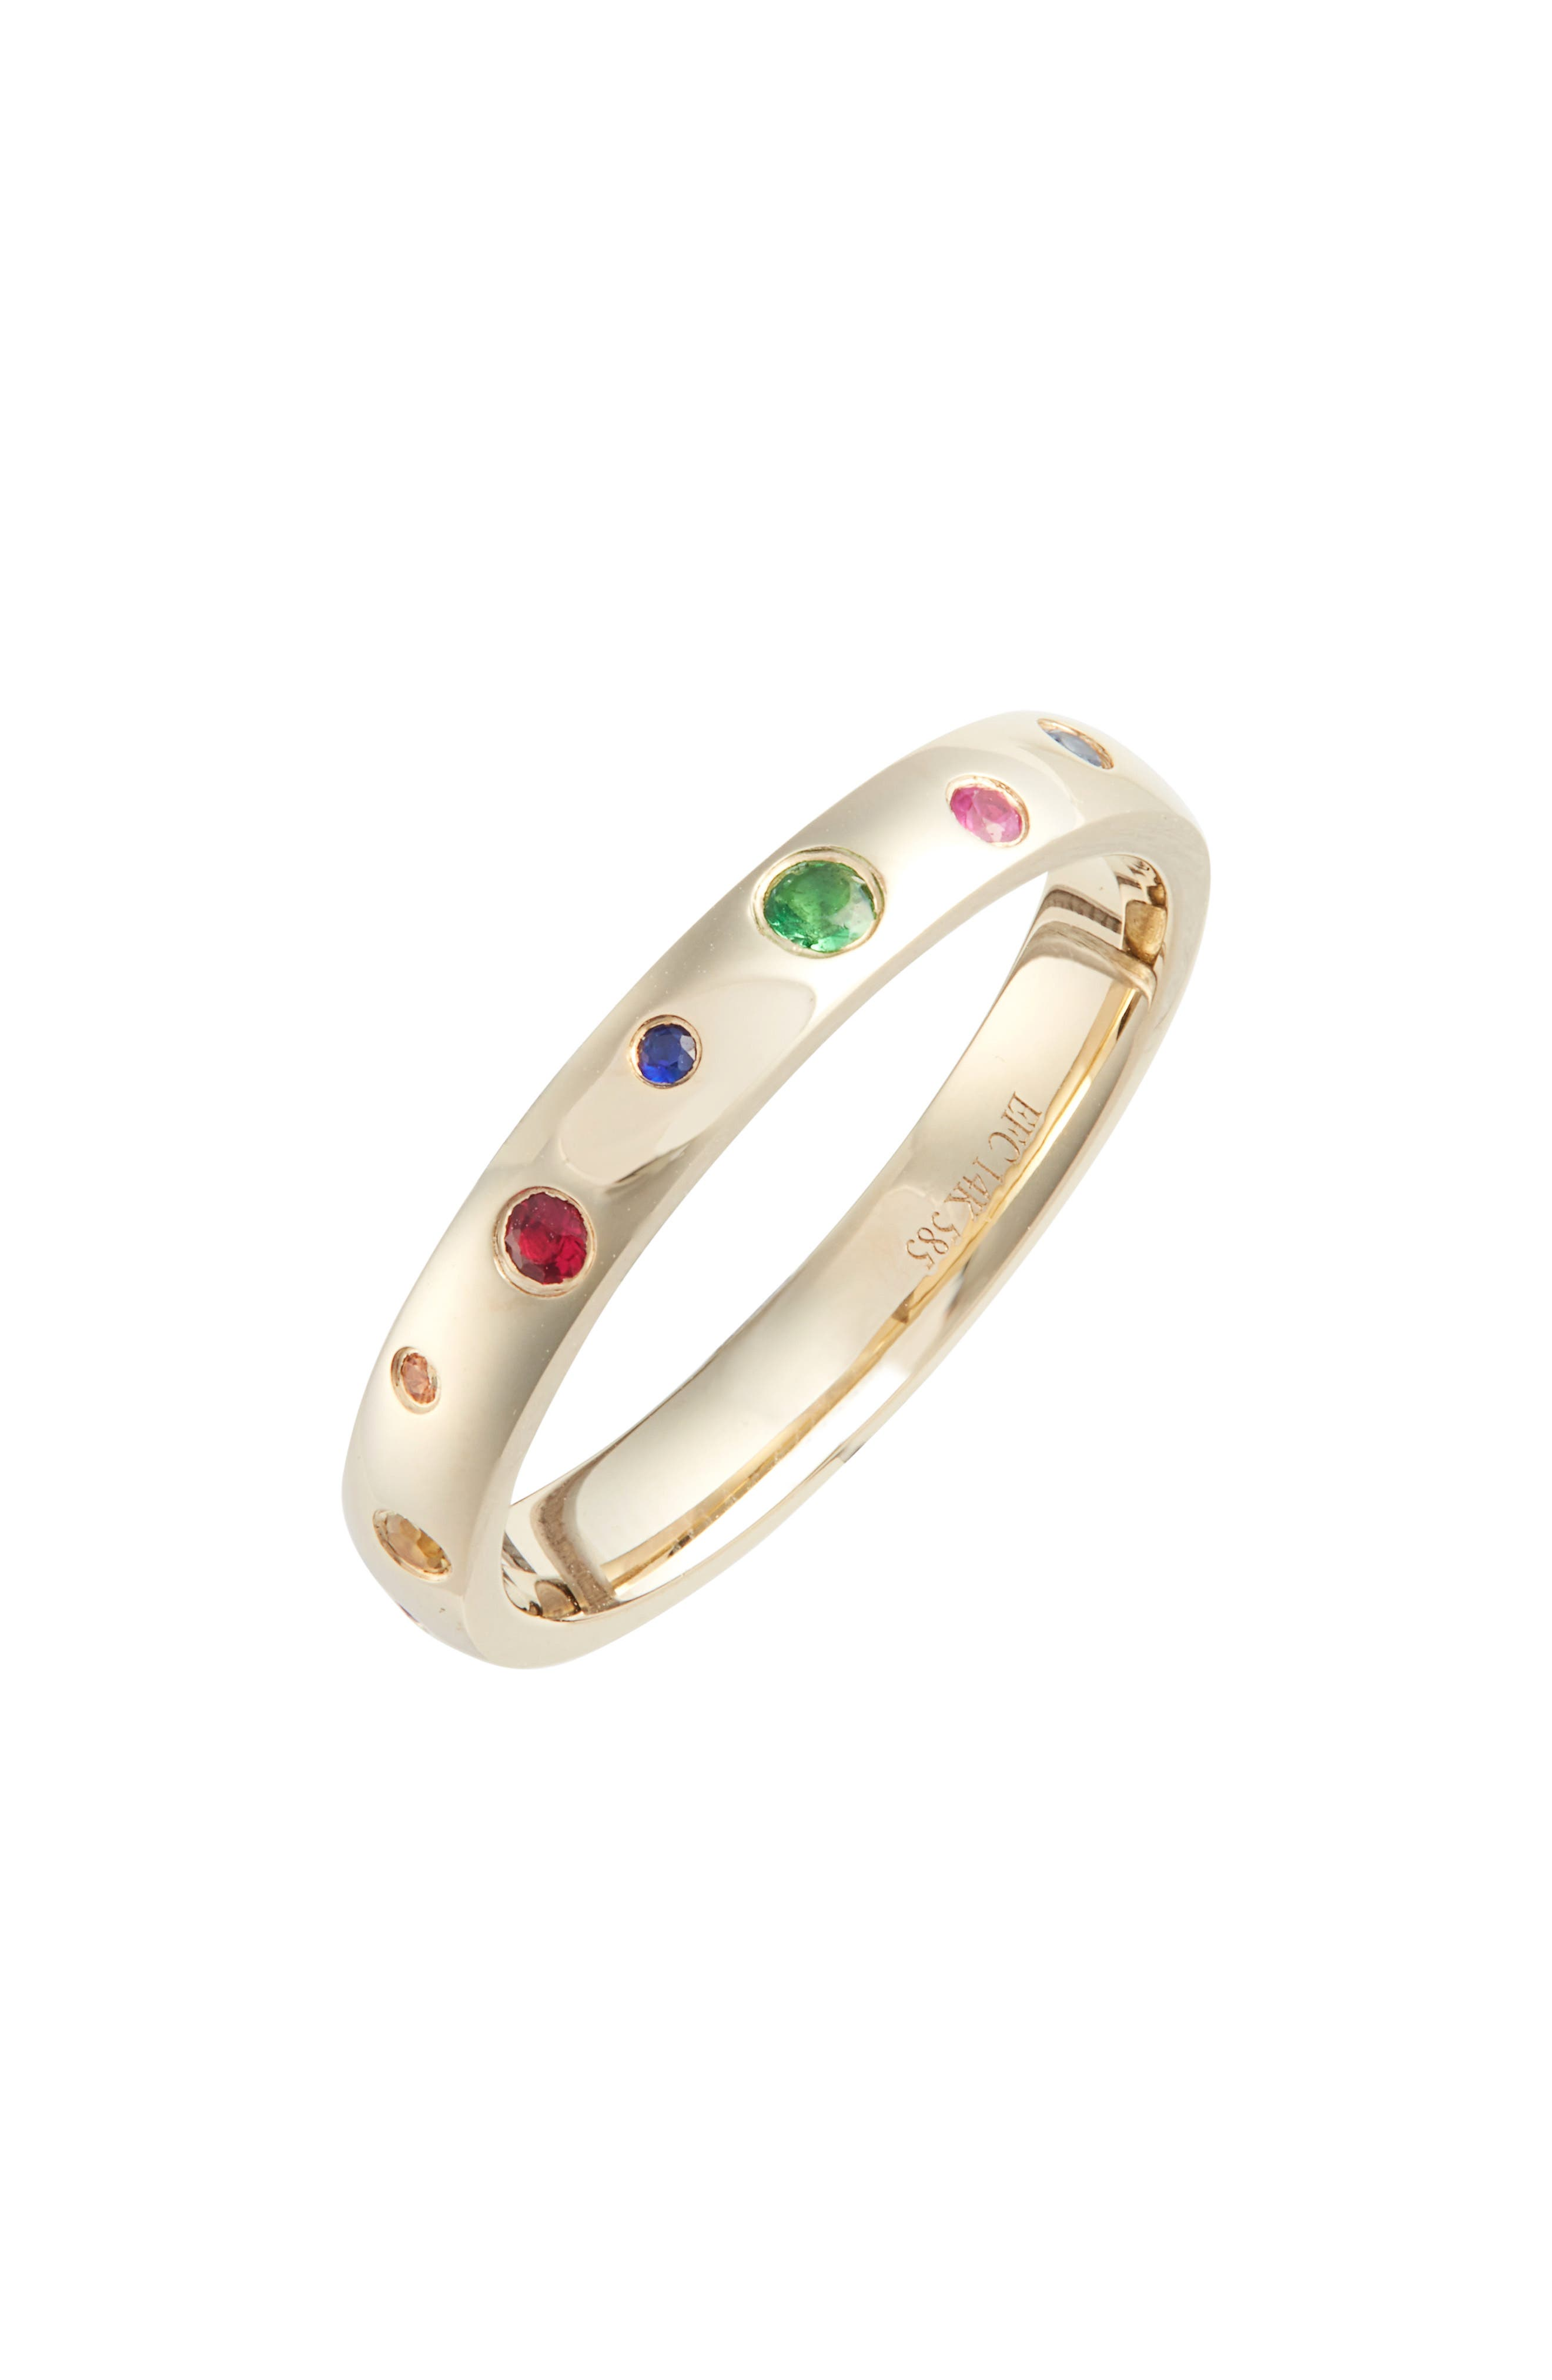 Rainbow Speckled Stacking Ring,                         Main,                         color, YELLOW GOLD